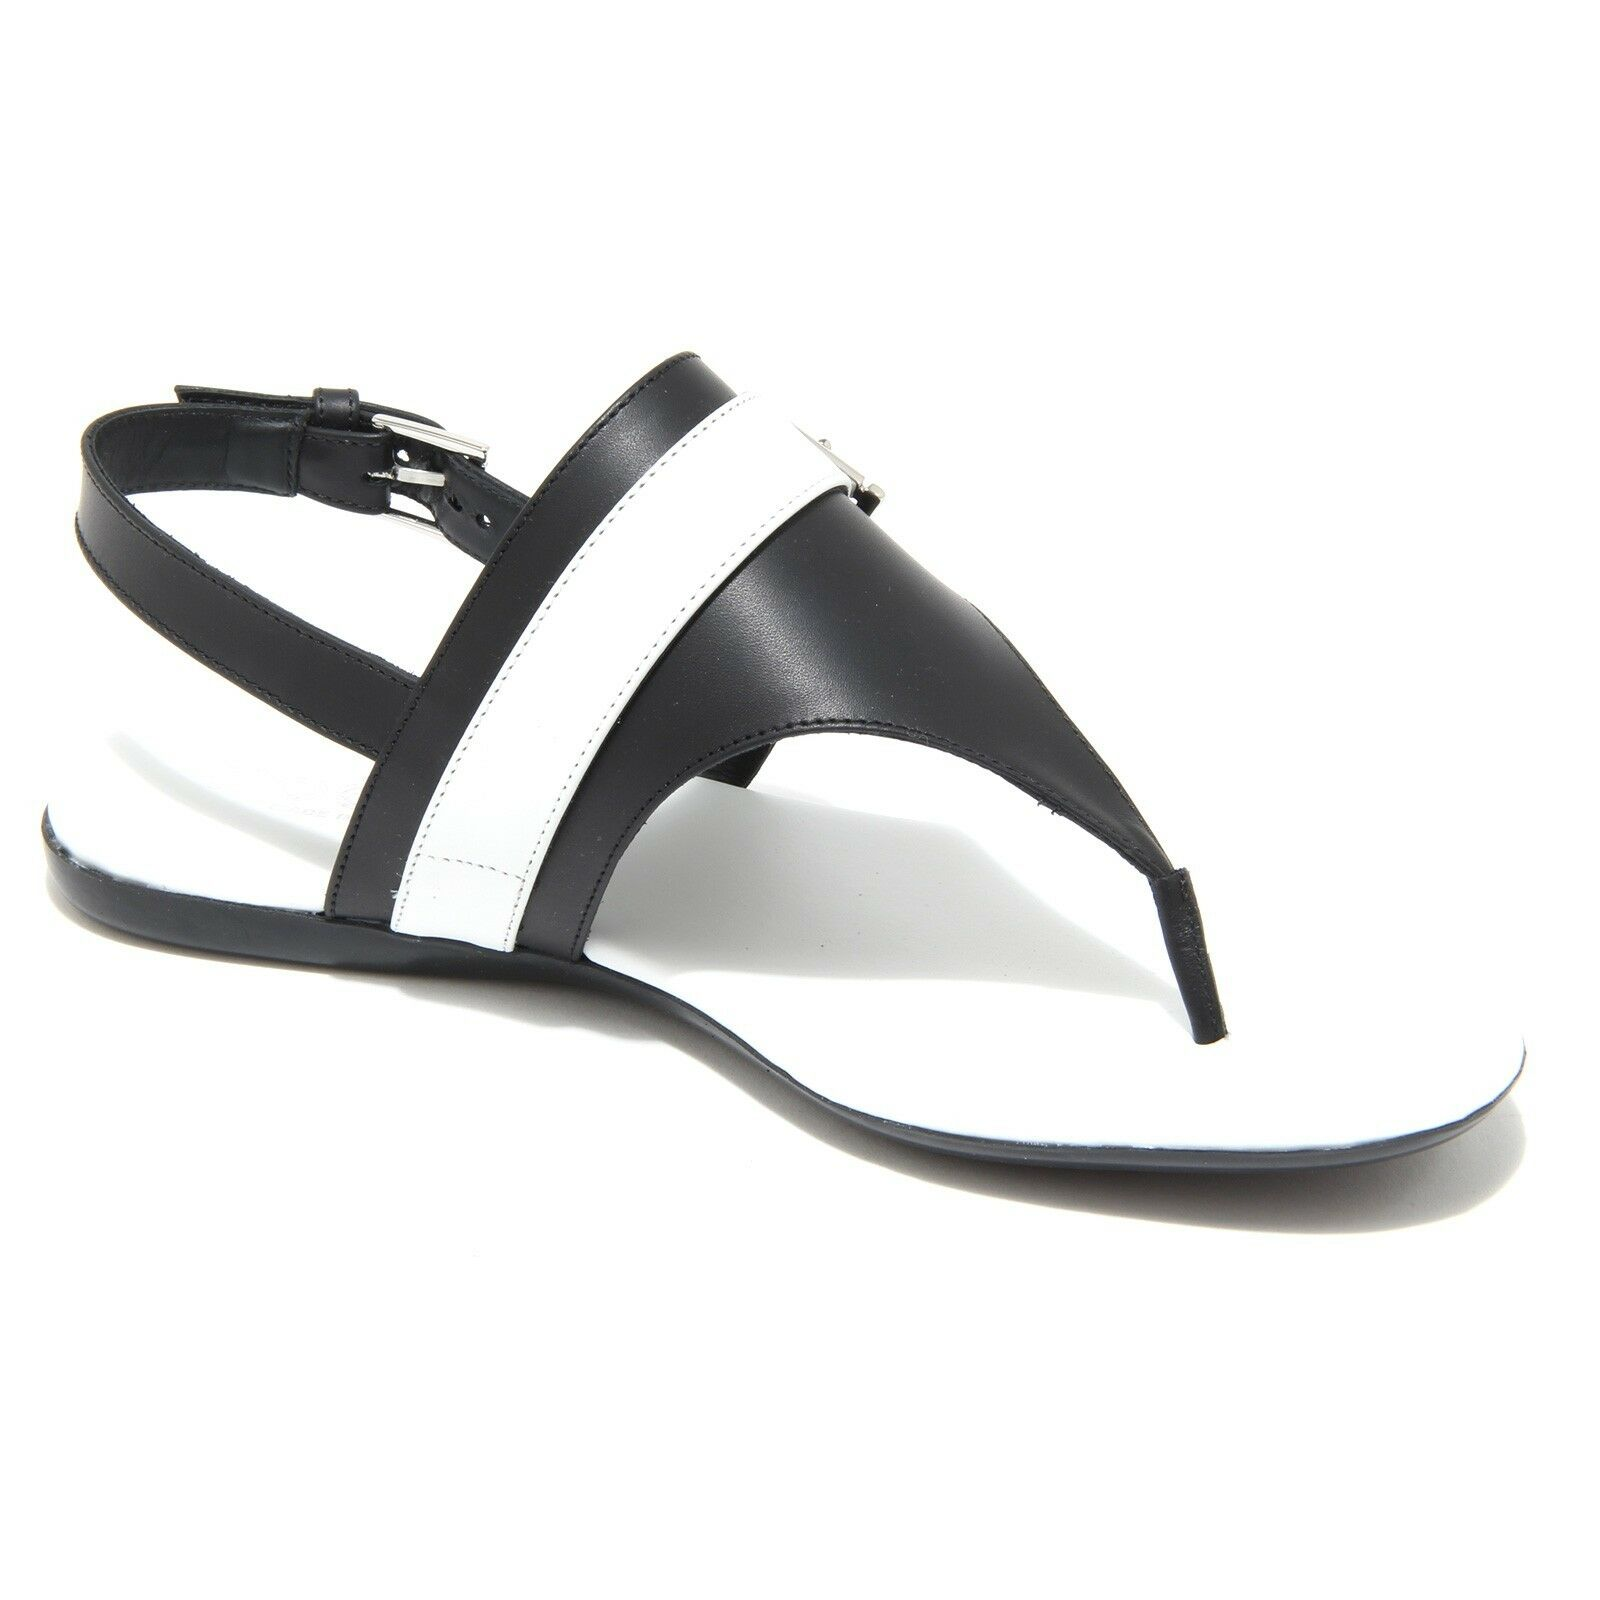 7964I infradito donna nero HOGBN valencia scarpe shoes flips-flops shoes women